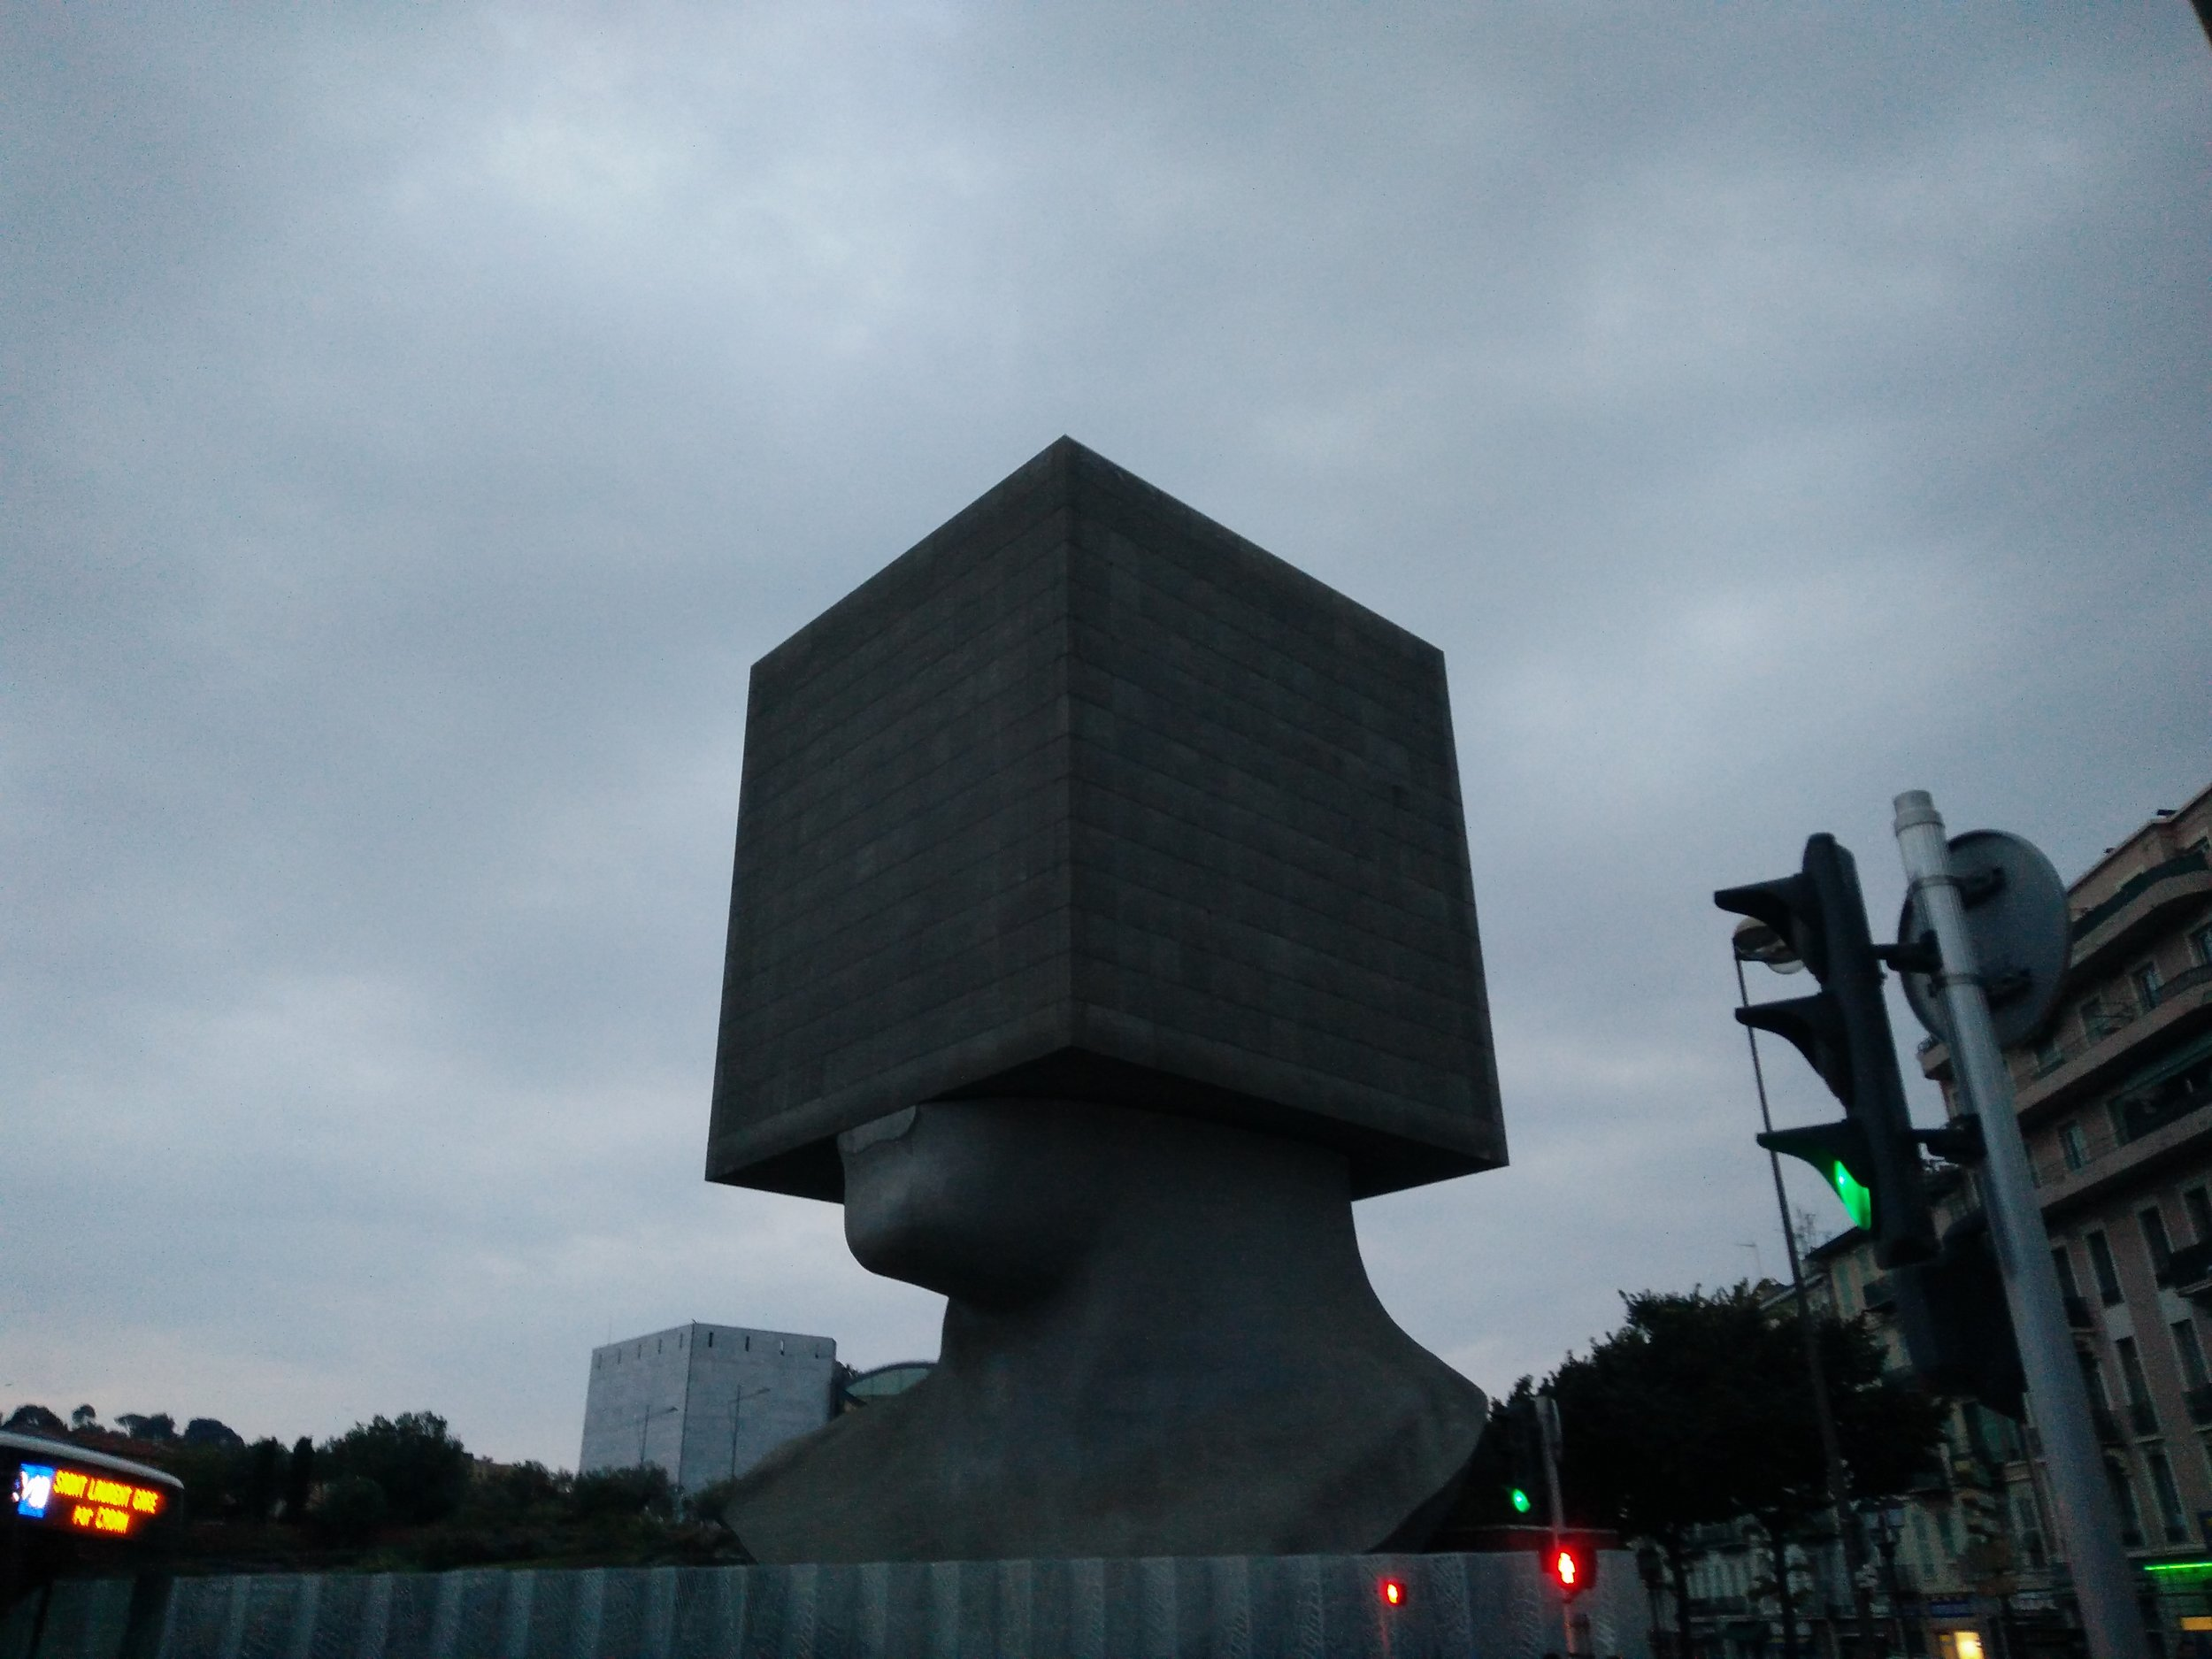 Square Head by Sacha Sosno in Nice, France.